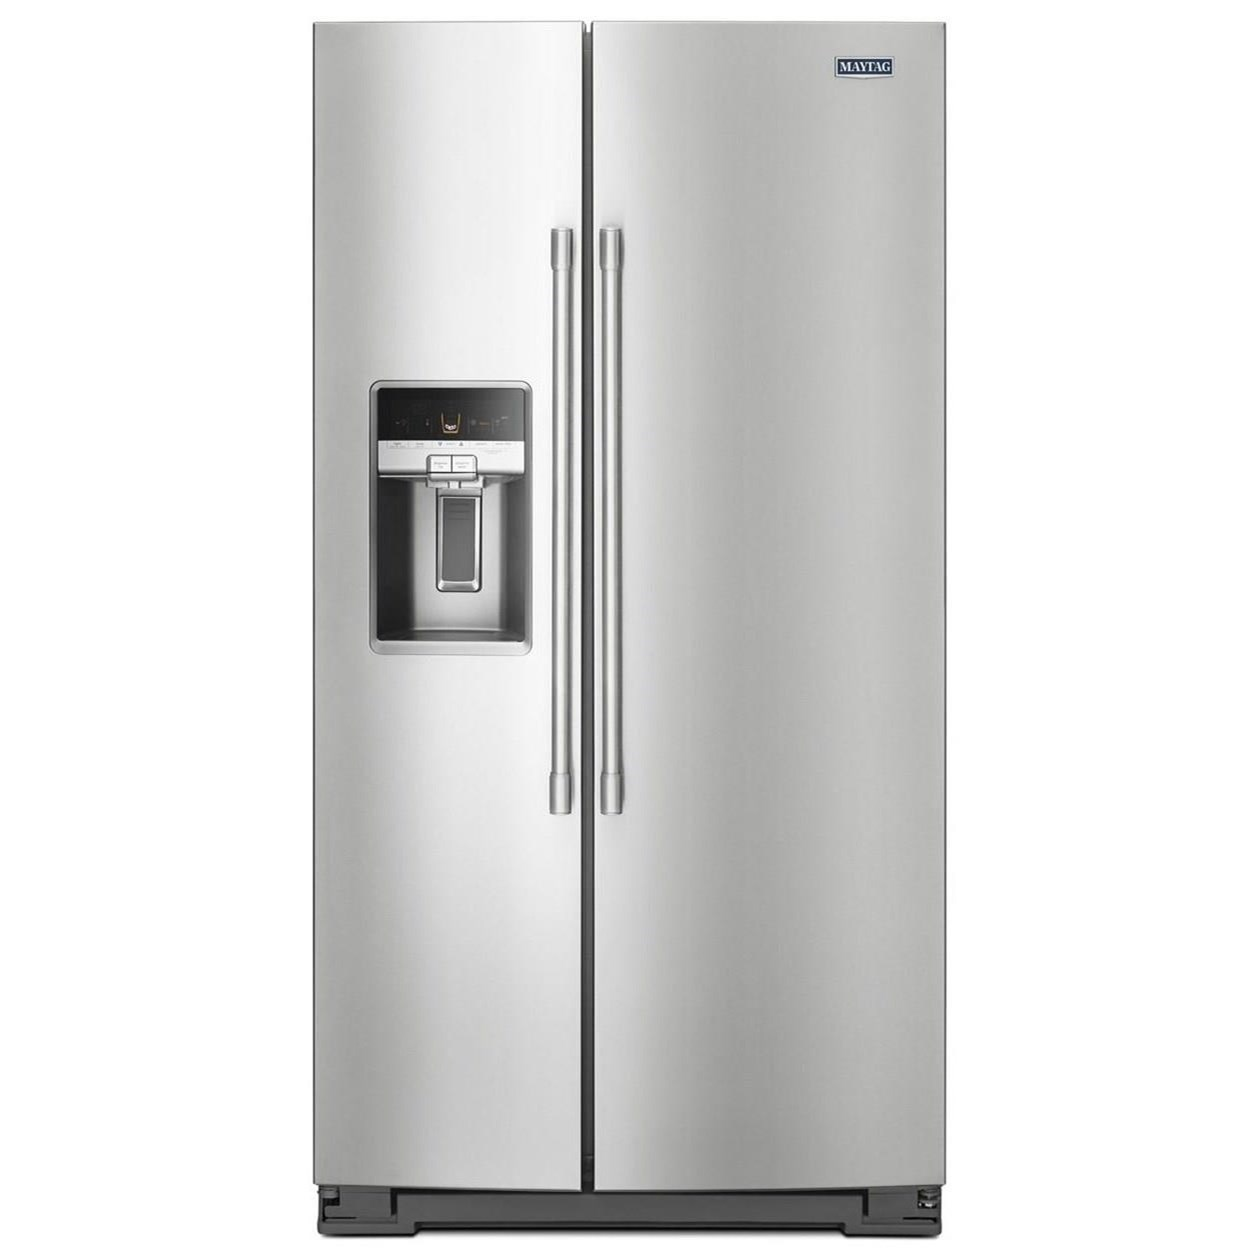 Side-By-Side Refrigerators- Maytag 36- Inch Wide Side-by-Side Refrigerator with by Maytag at Furniture Fair - North Carolina